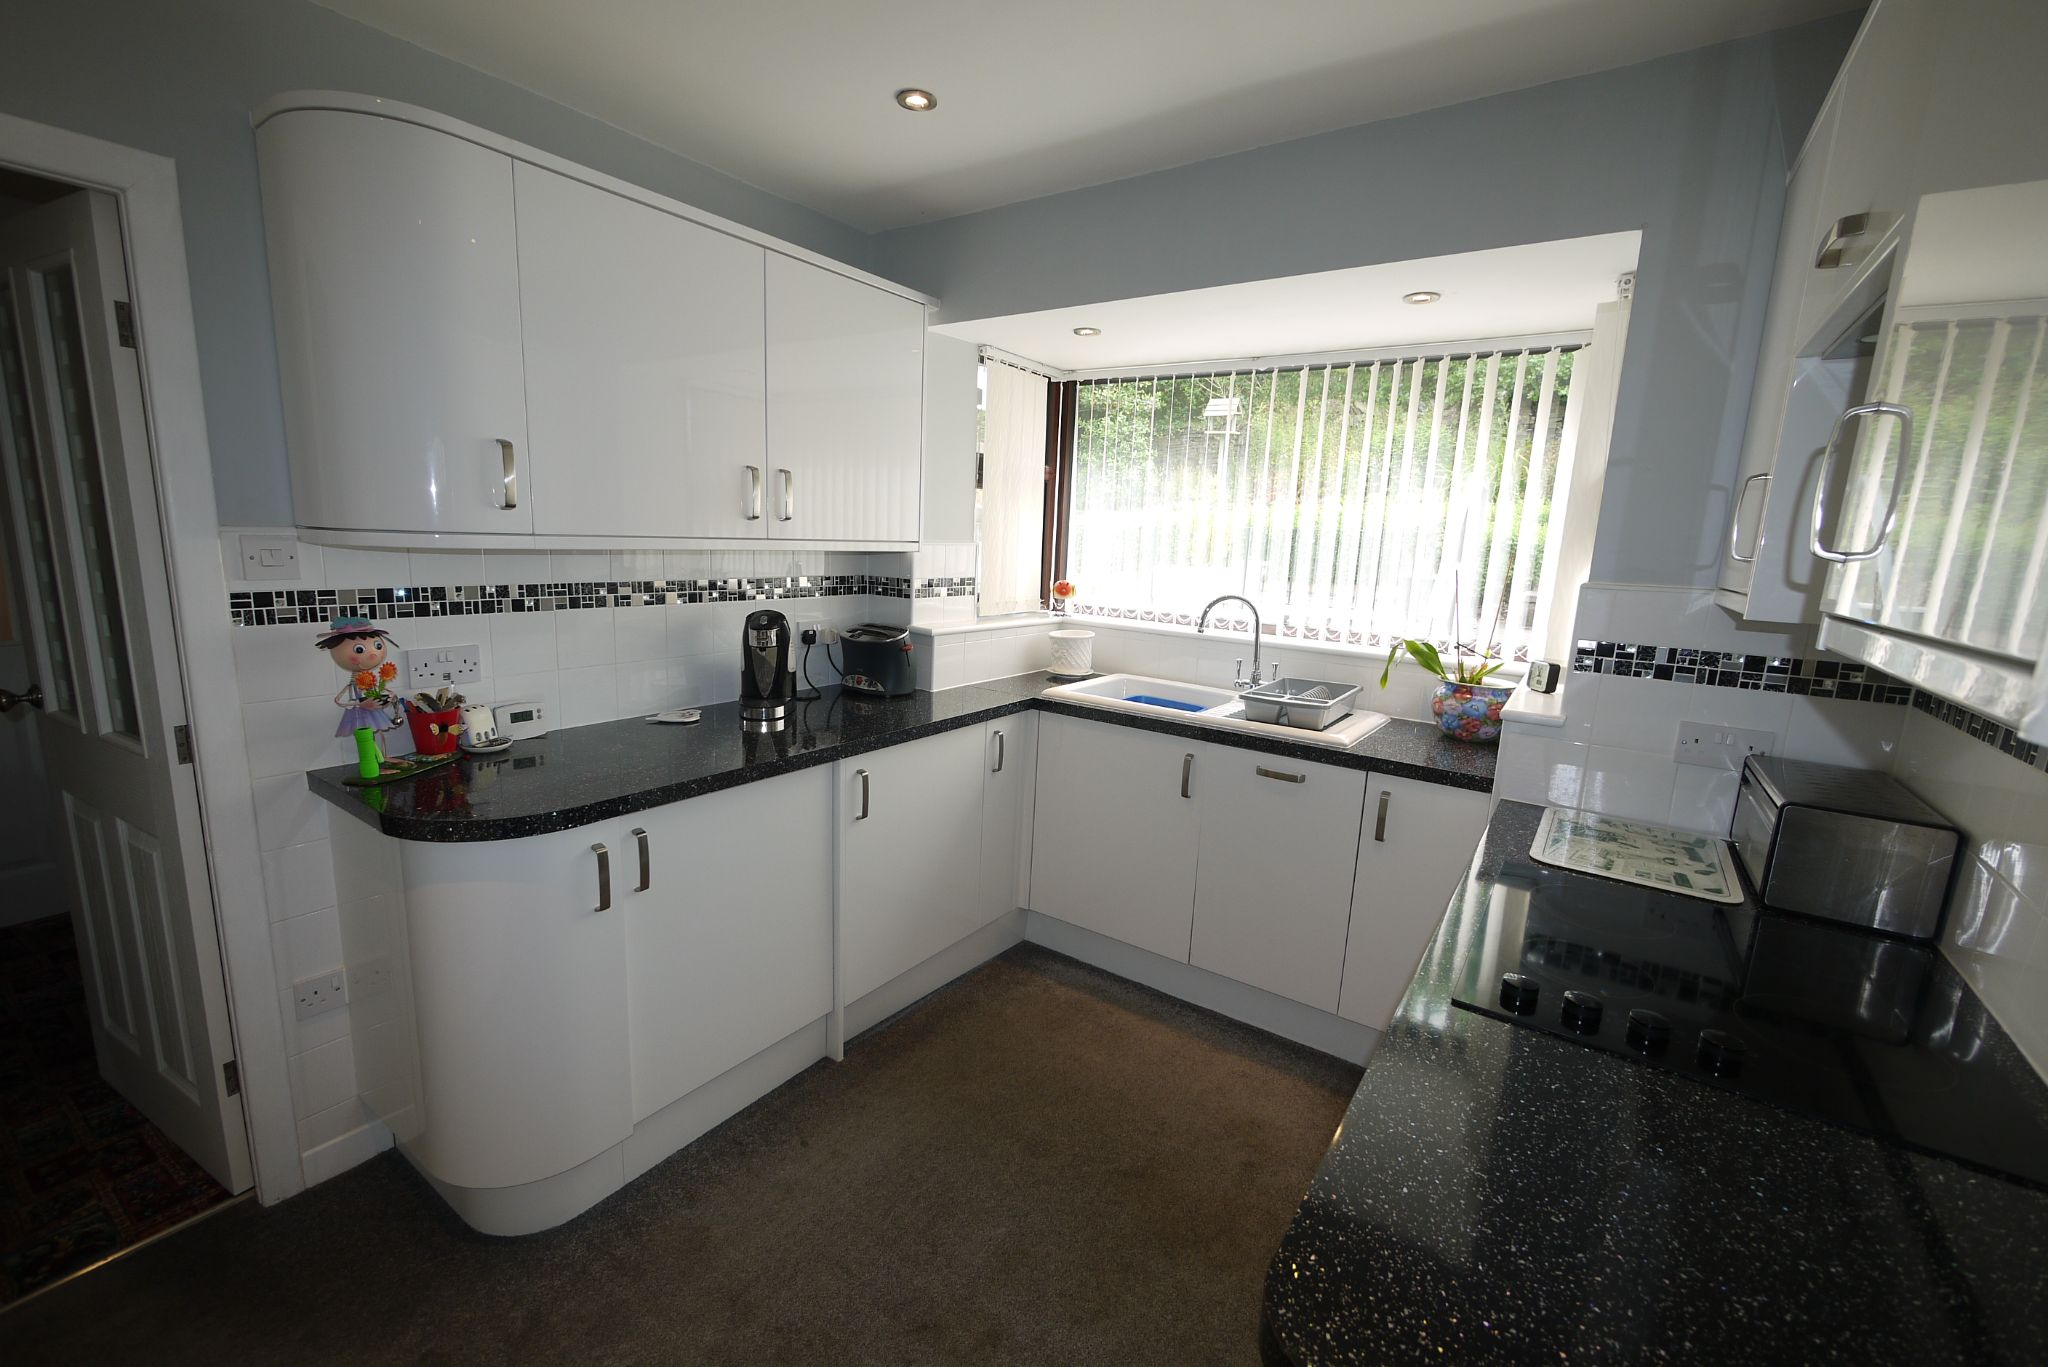 3 bedroom semi-detached bungalow SSTC in Brighouse - Photograph 4.